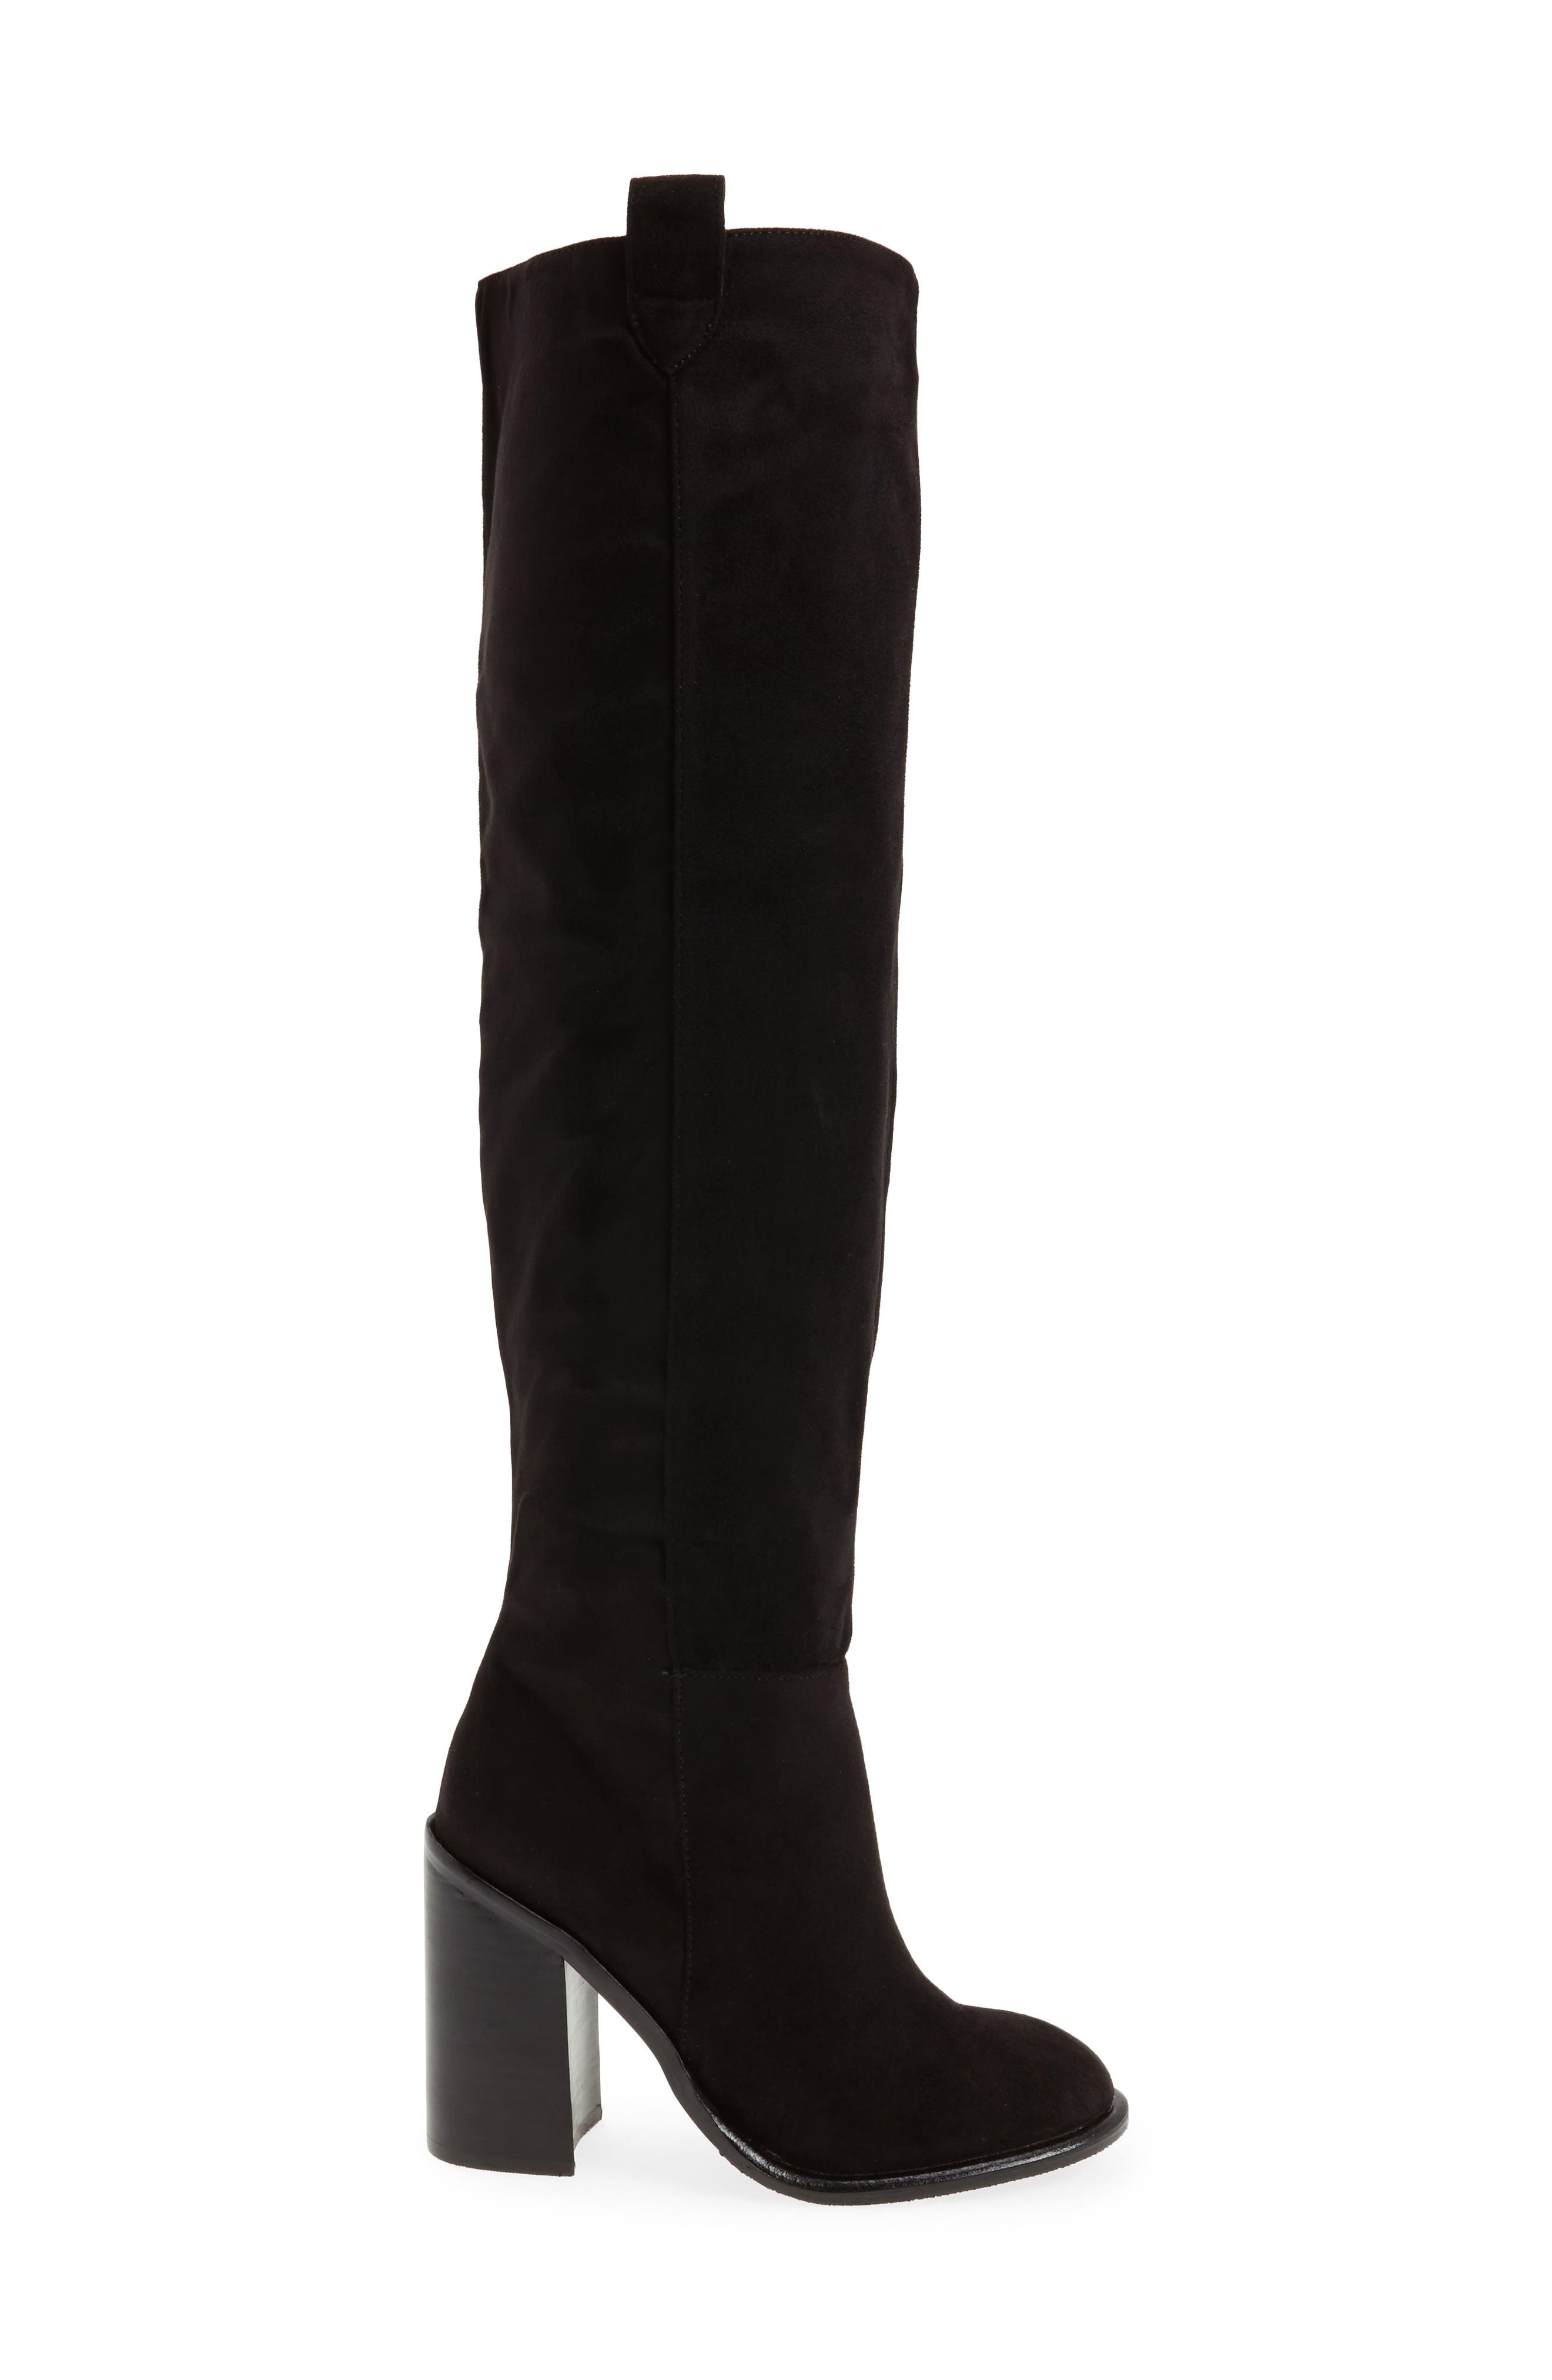 Nate Over the Knee Boot,                             Alternate thumbnail 3, color,                             Black